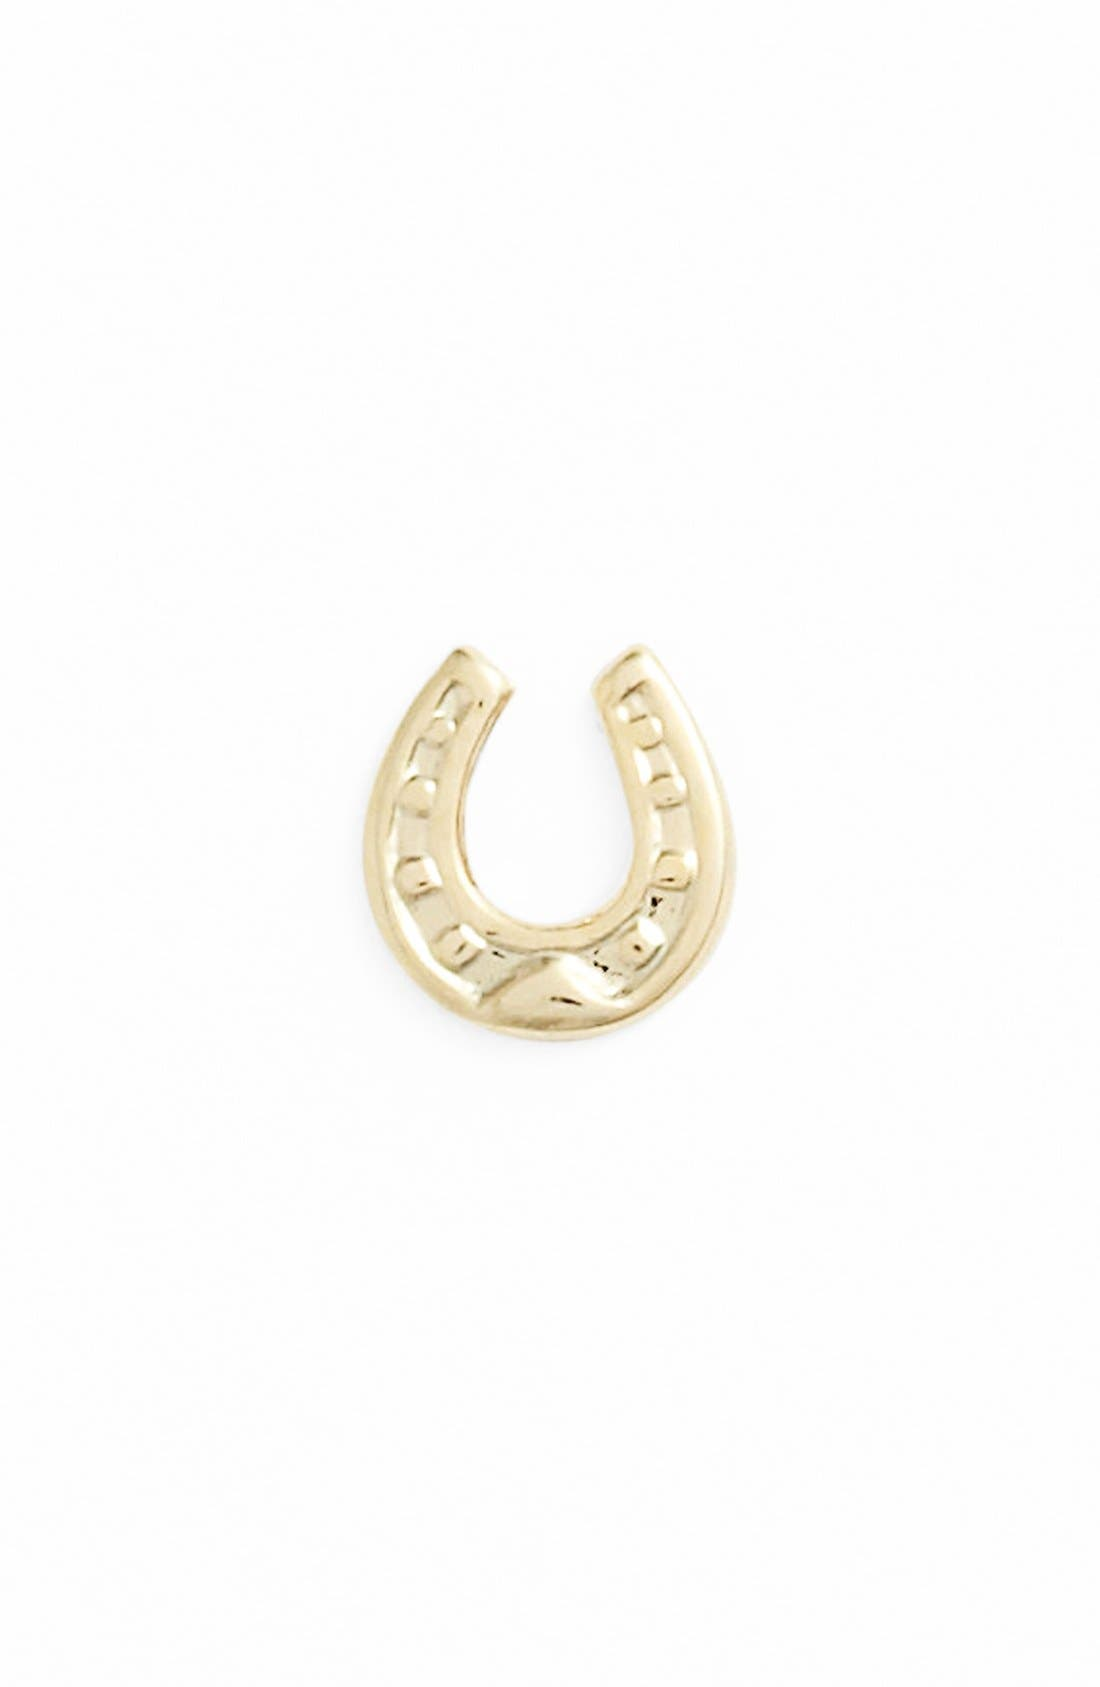 Alternate Image 1 Selected - Bonnie Jonas 'Horseshoe' Stud Earring